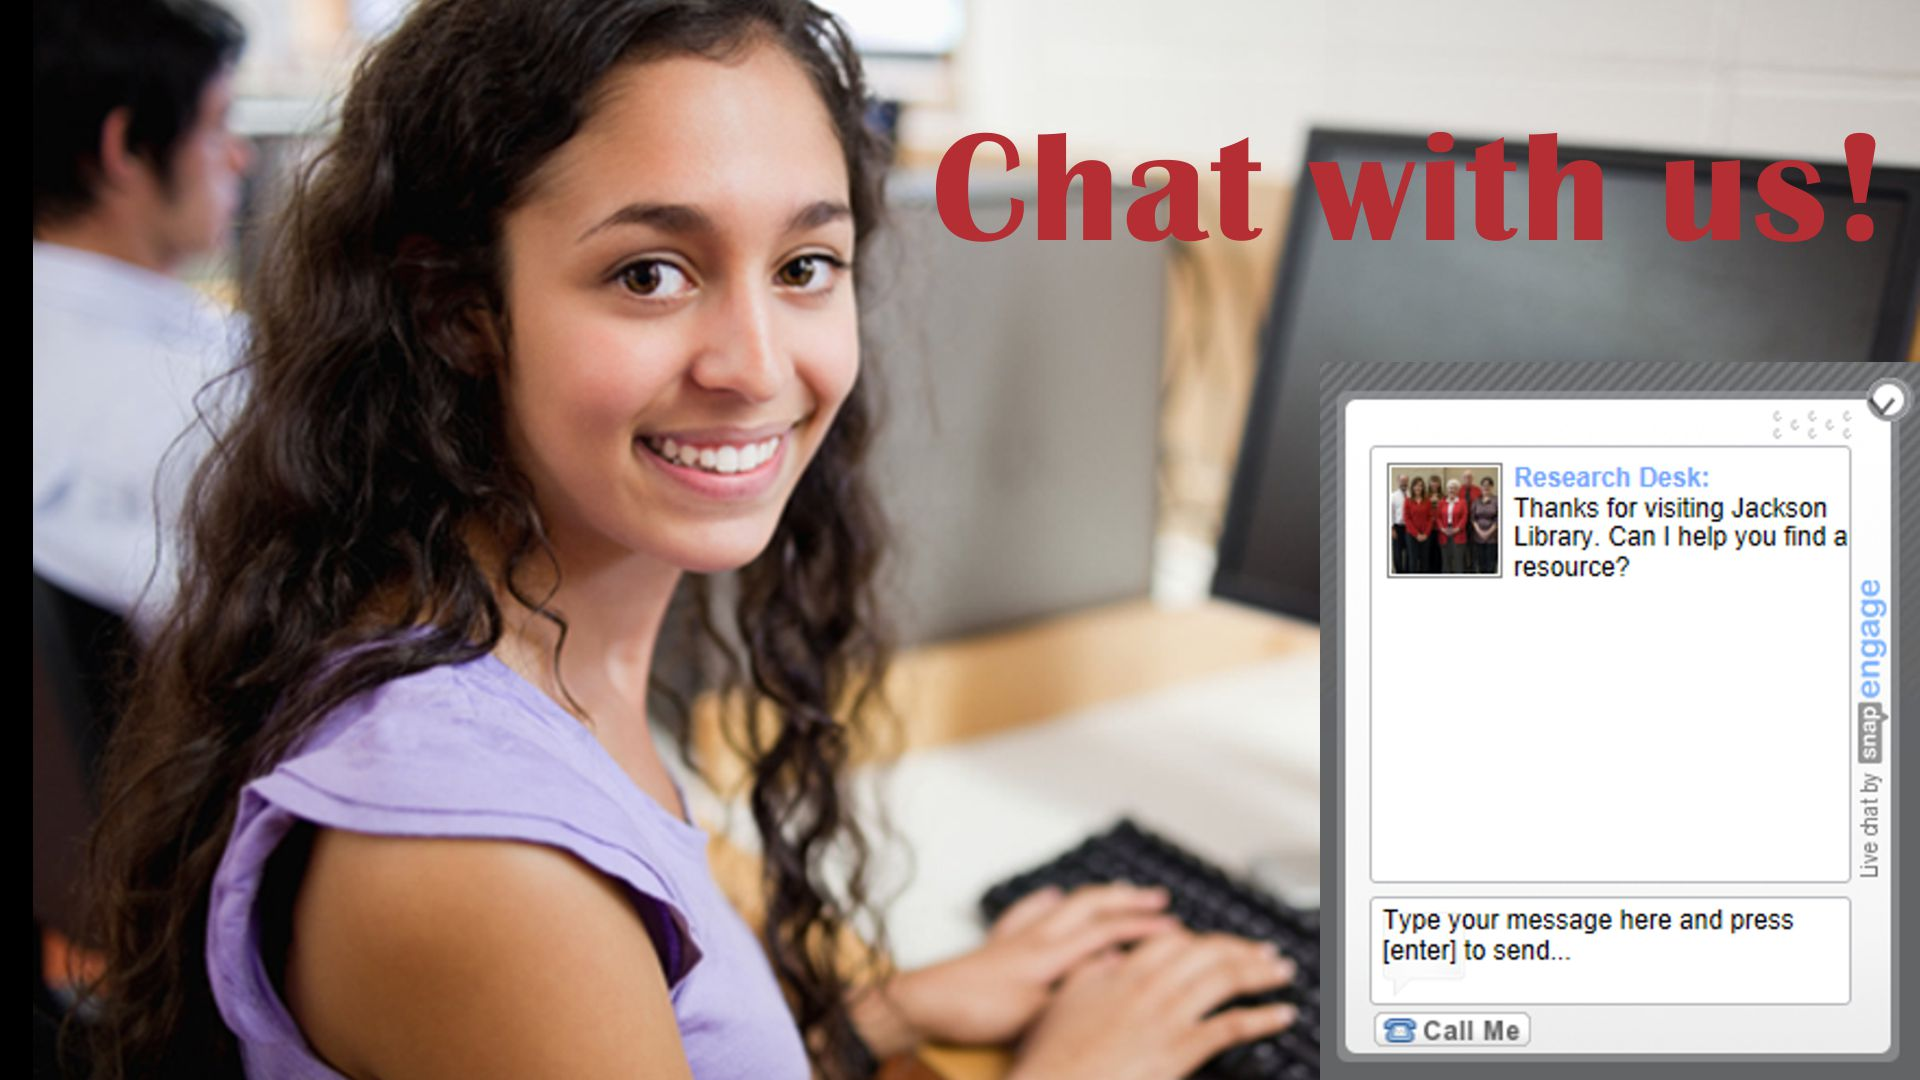 Chat with us at Jackson Library